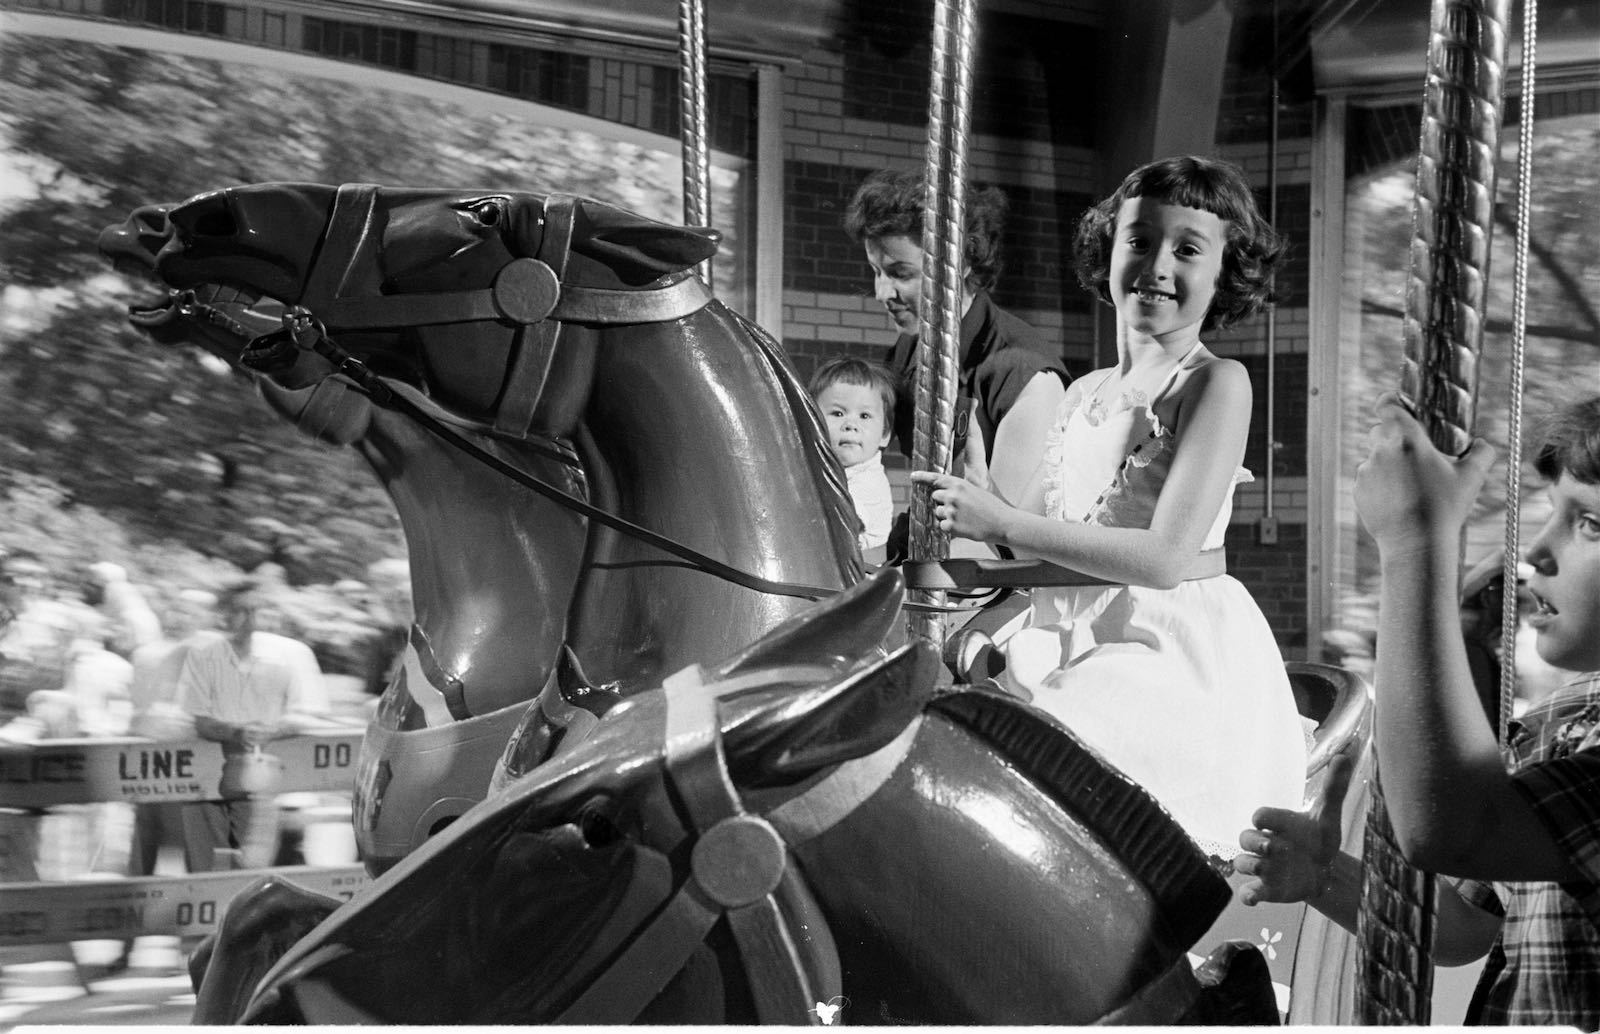 Children riding the carousel in Central Park